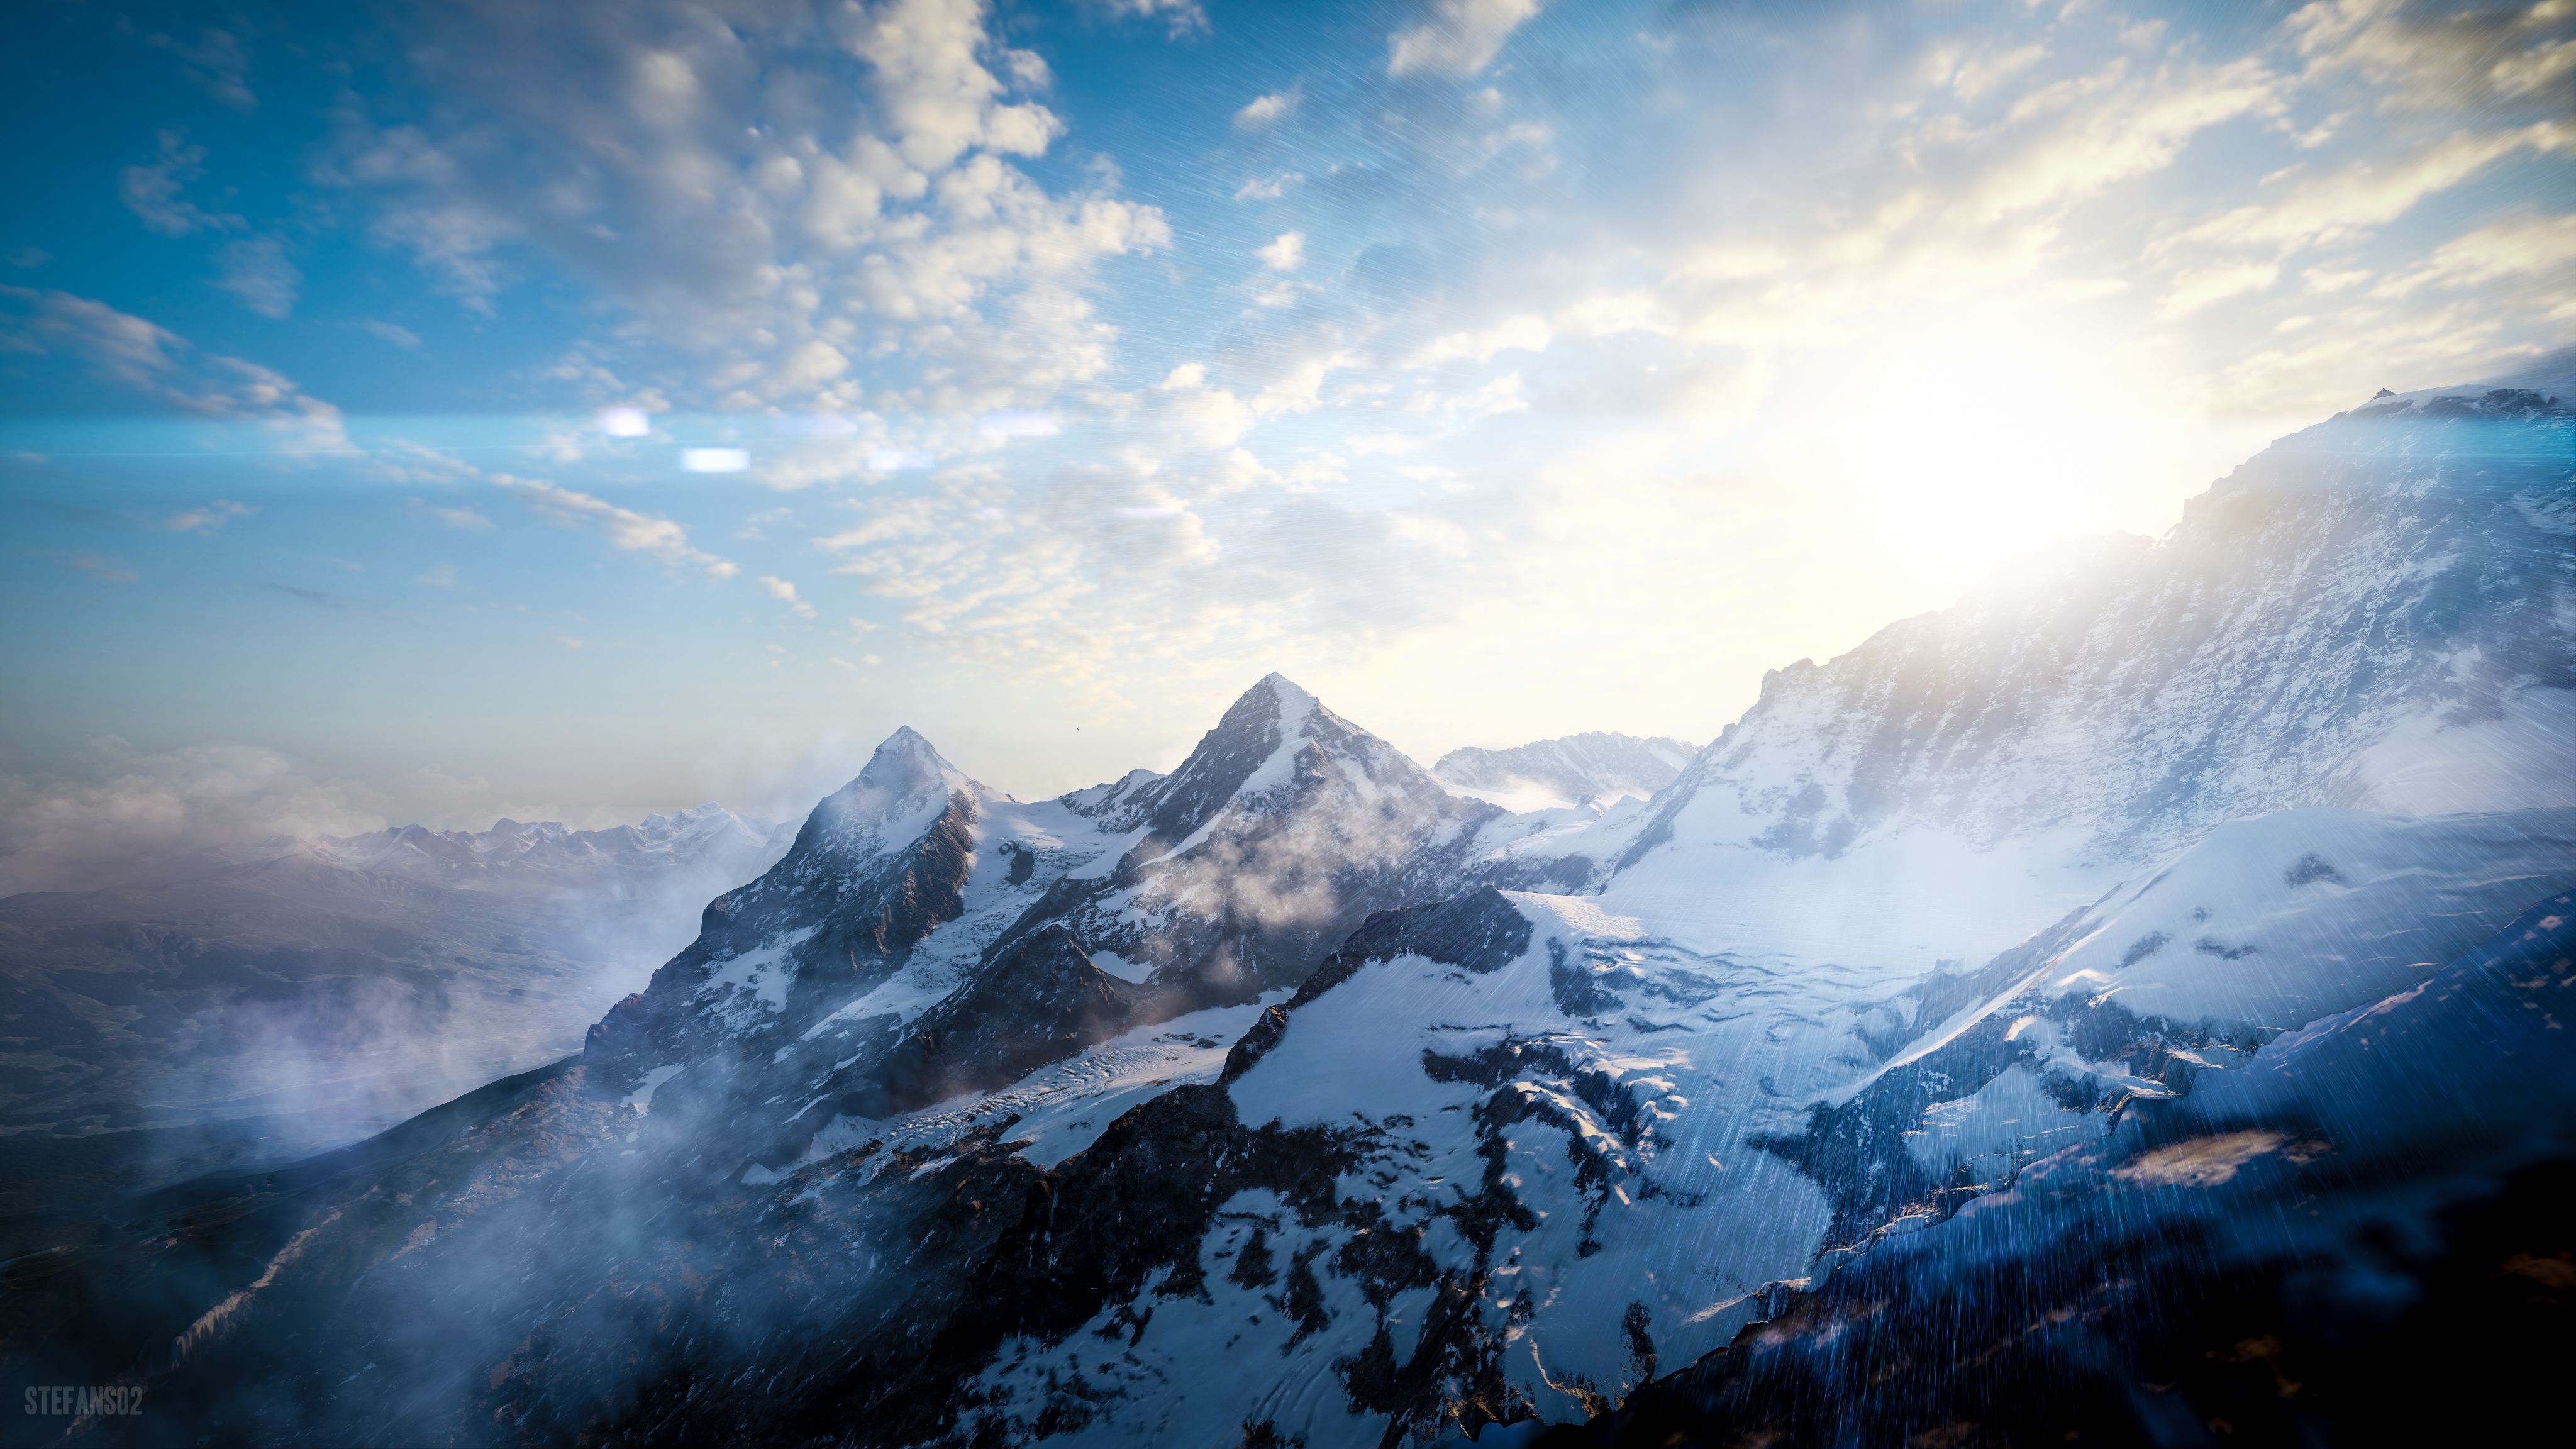 59153 download wallpaper Nature, Tops, Vertex, Sky, Snow Covered, Snowbound, View From Above, Sunlight, Mountains screensavers and pictures for free